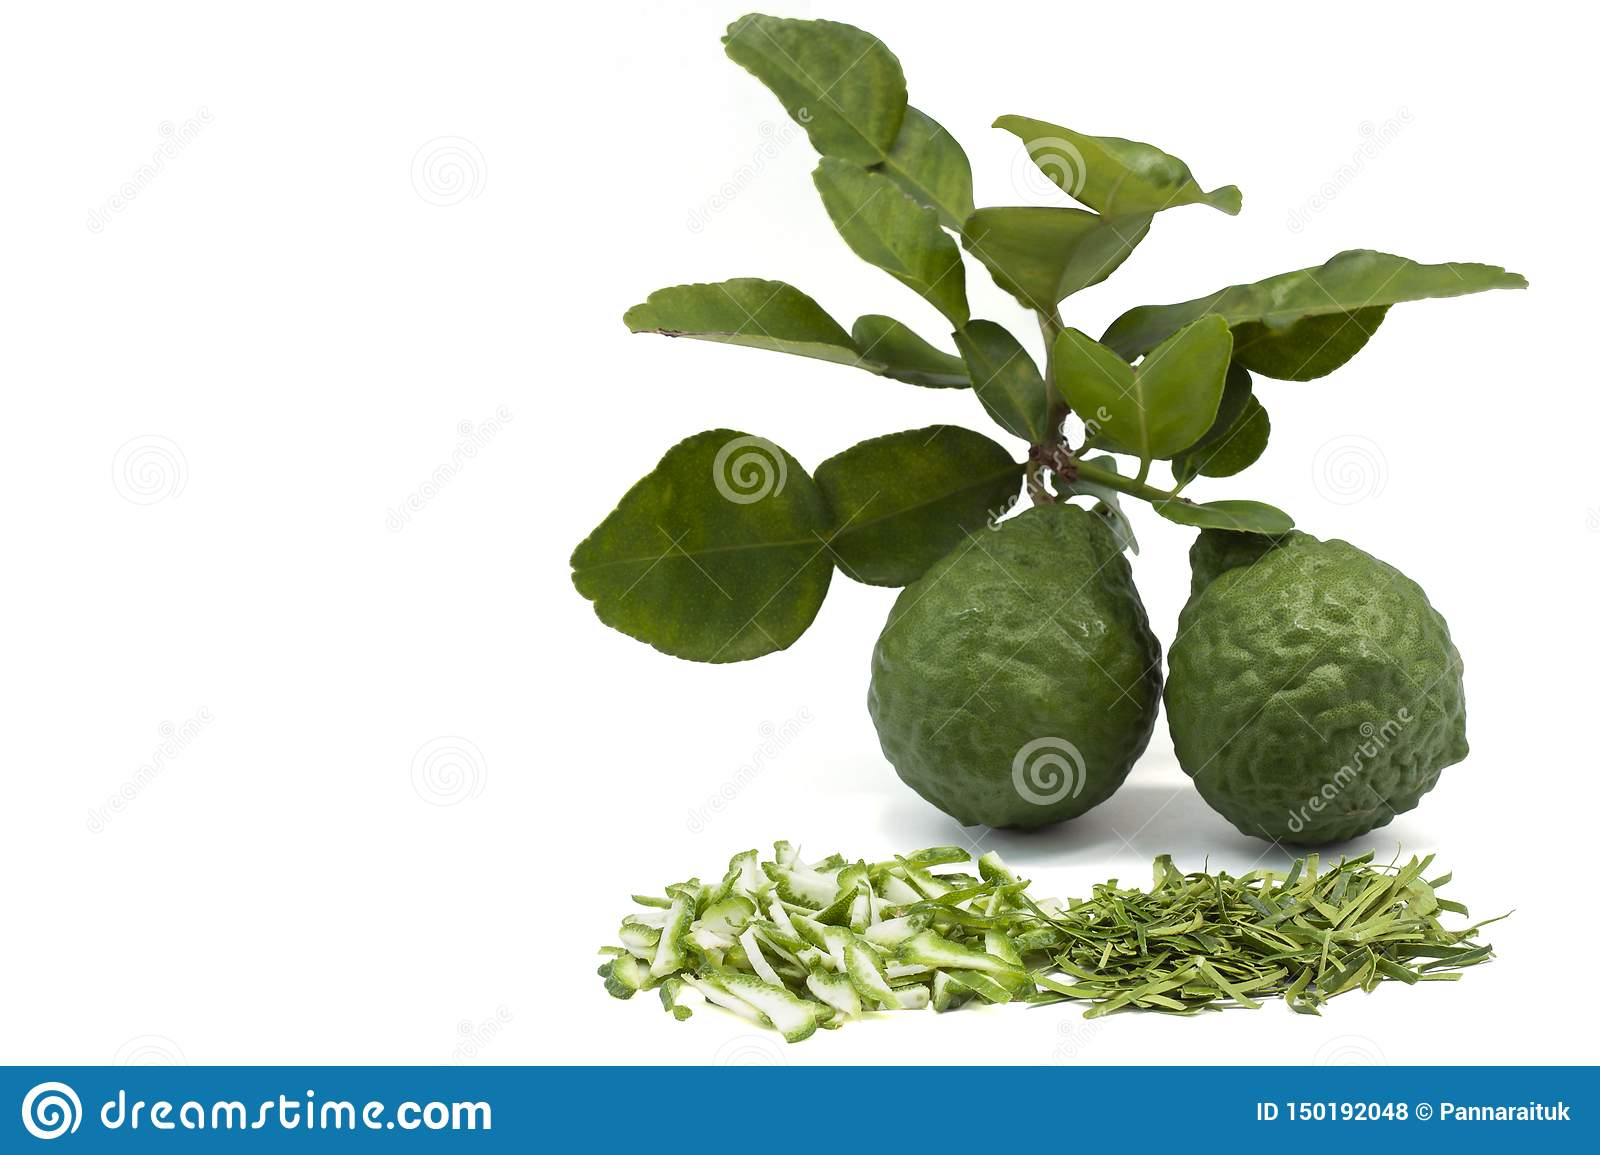 Slice Bergamot, Kaffir lime, Leech lime or Mauritius papeda fruit and leaf isolated on white background.